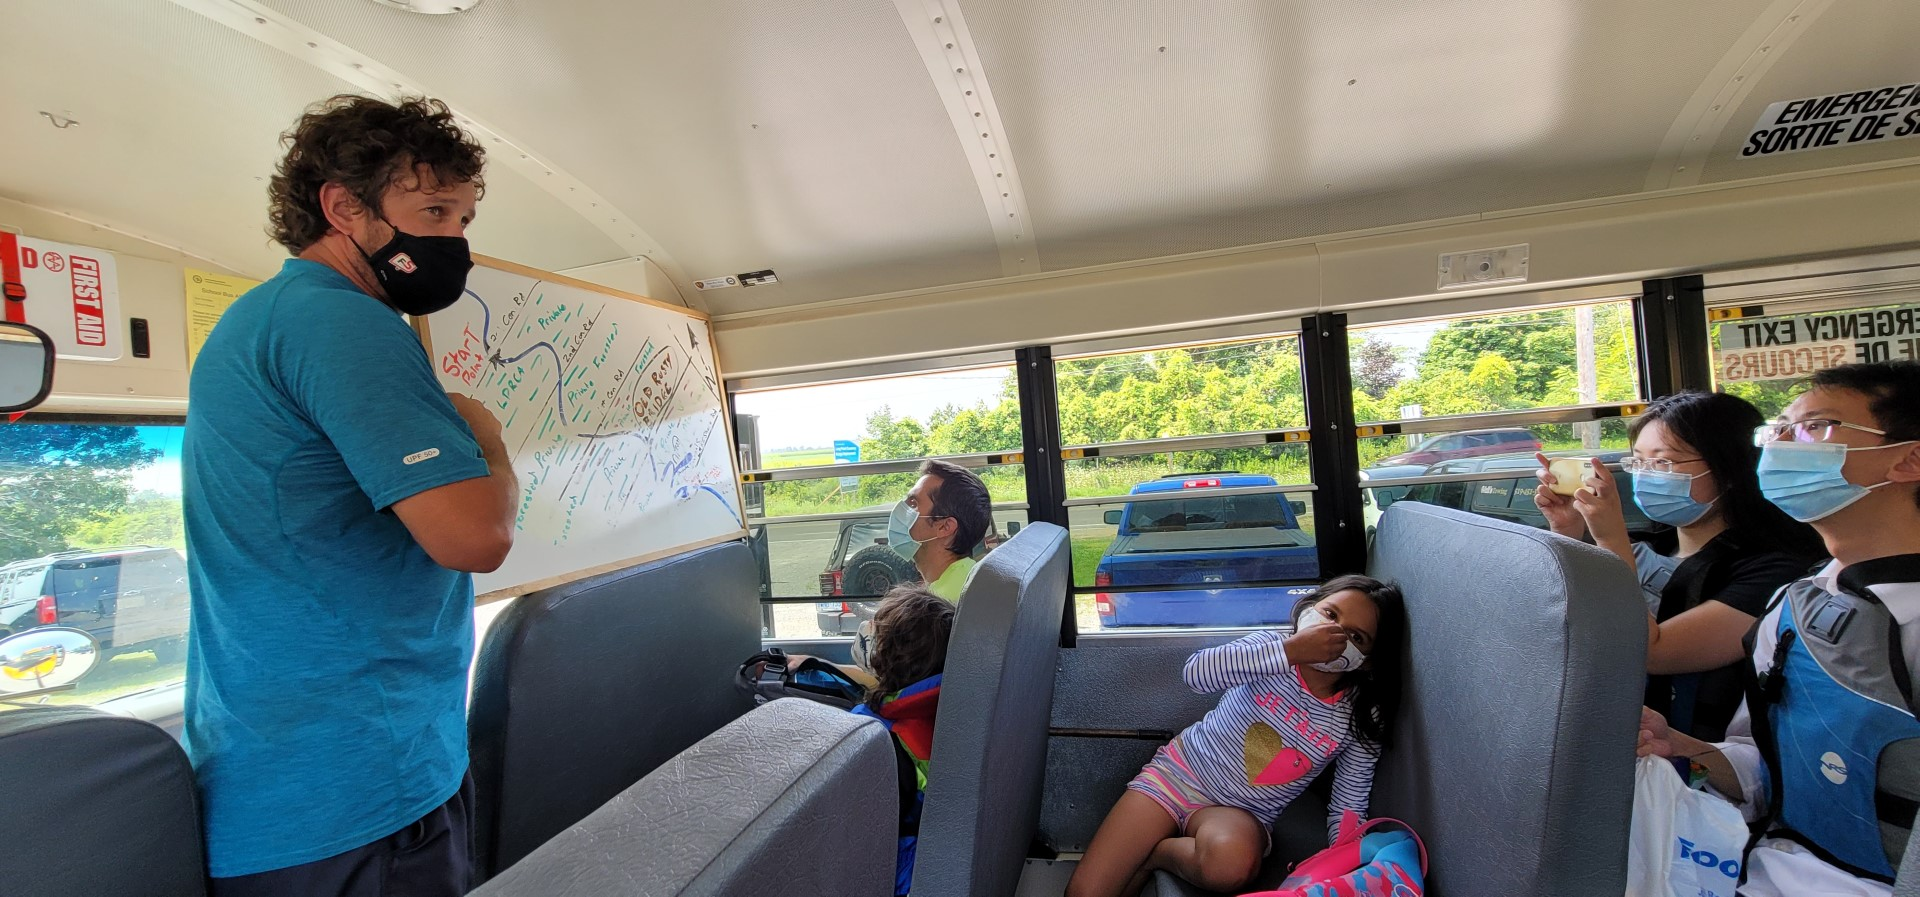 people on bus masked with instructor